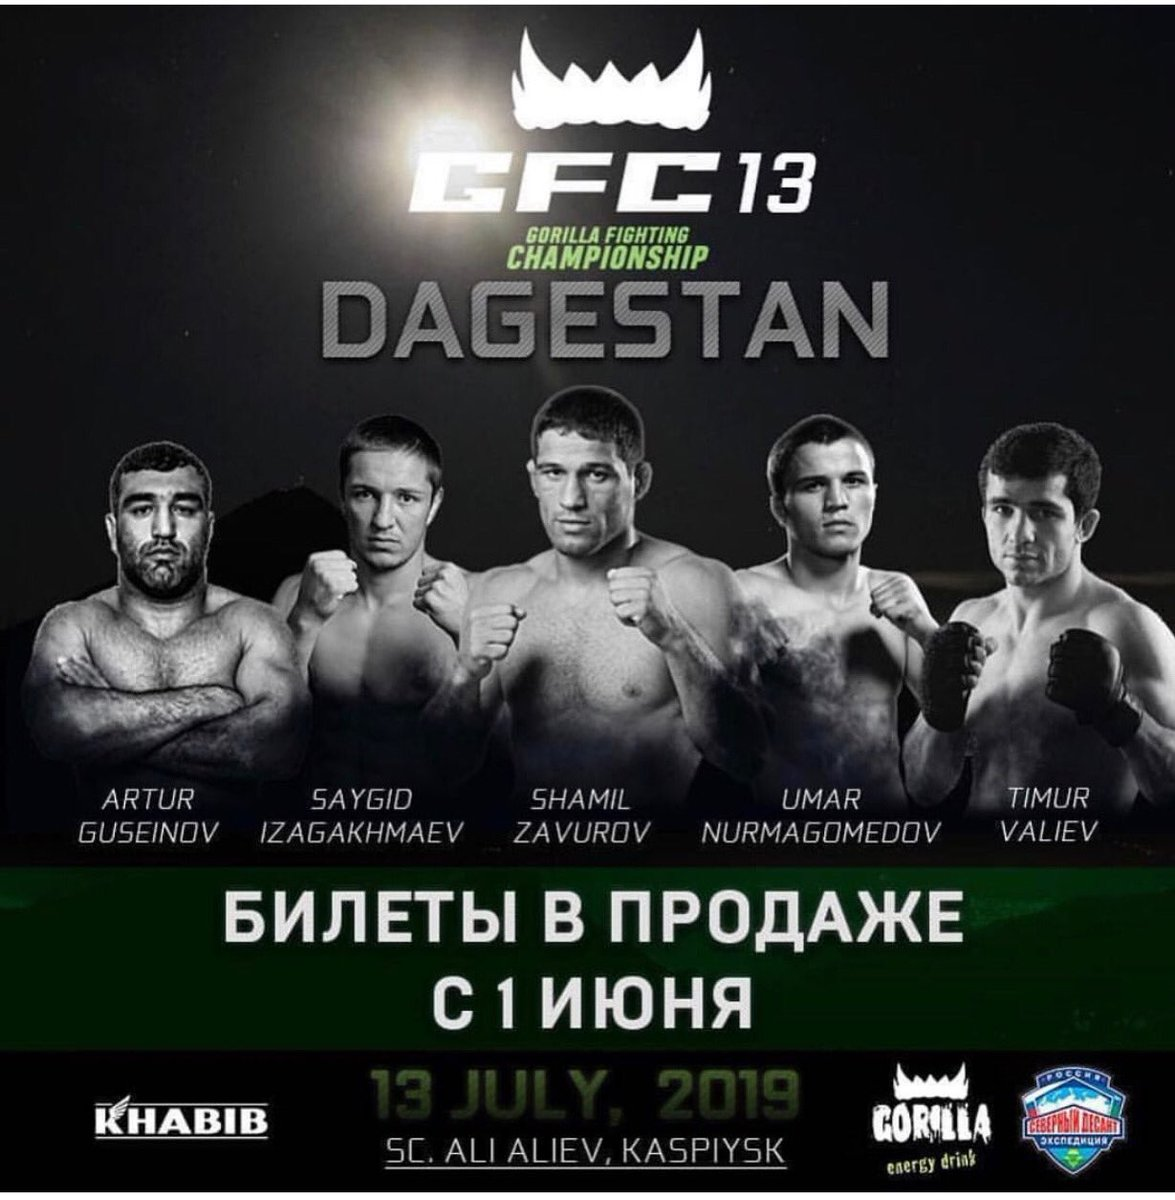 Khabib Nurmagomedov (@TeamKhabib) is getting into the promotion business. He's involved with a card in July, per his manager Ali Abdelaziz (@AliAbdelaziz00). Check out the logo on the bottom left.